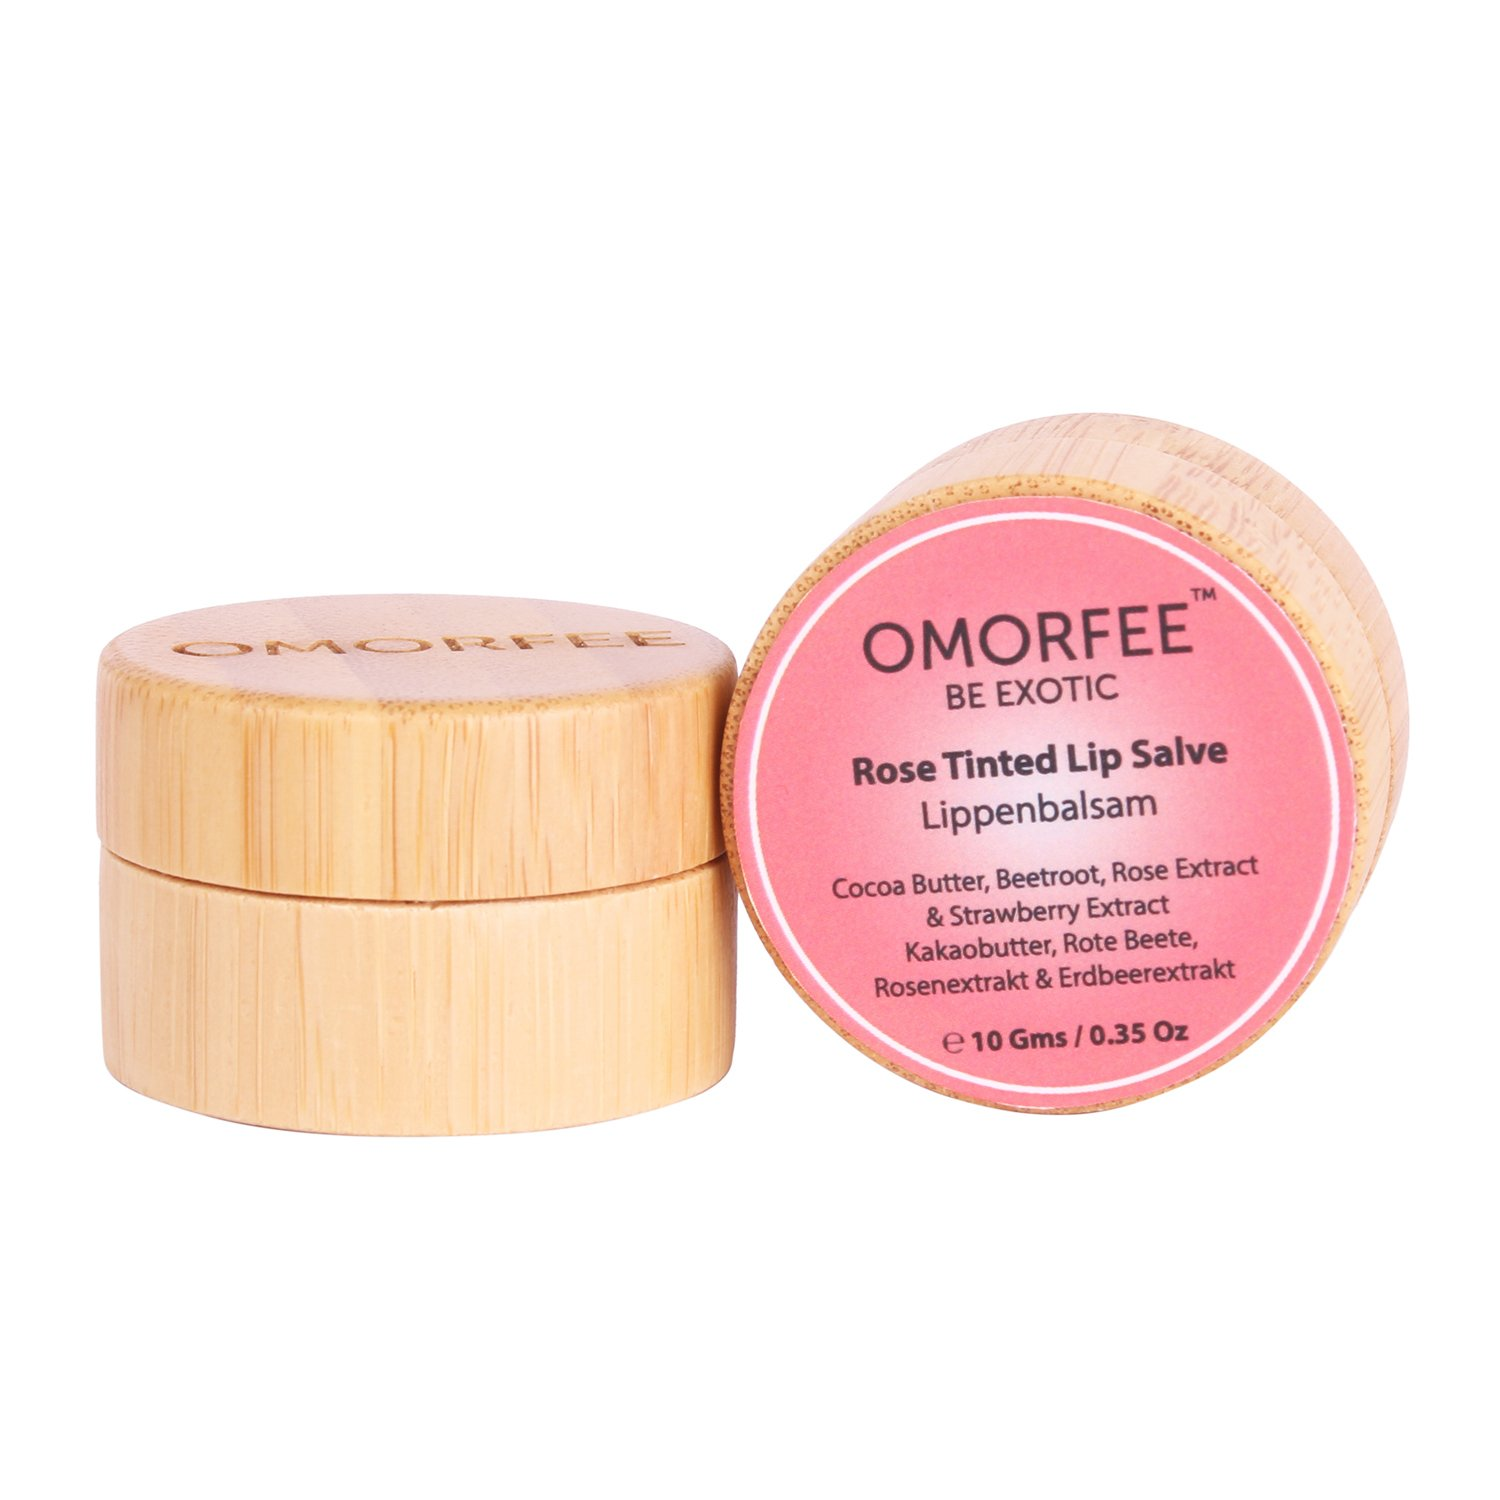 OMORFEE Rose Tinted Lip Salve with Beetroot Extract, Natural Cocoa Butter, Rose Extract and Strawberry Extract, 10 Grams